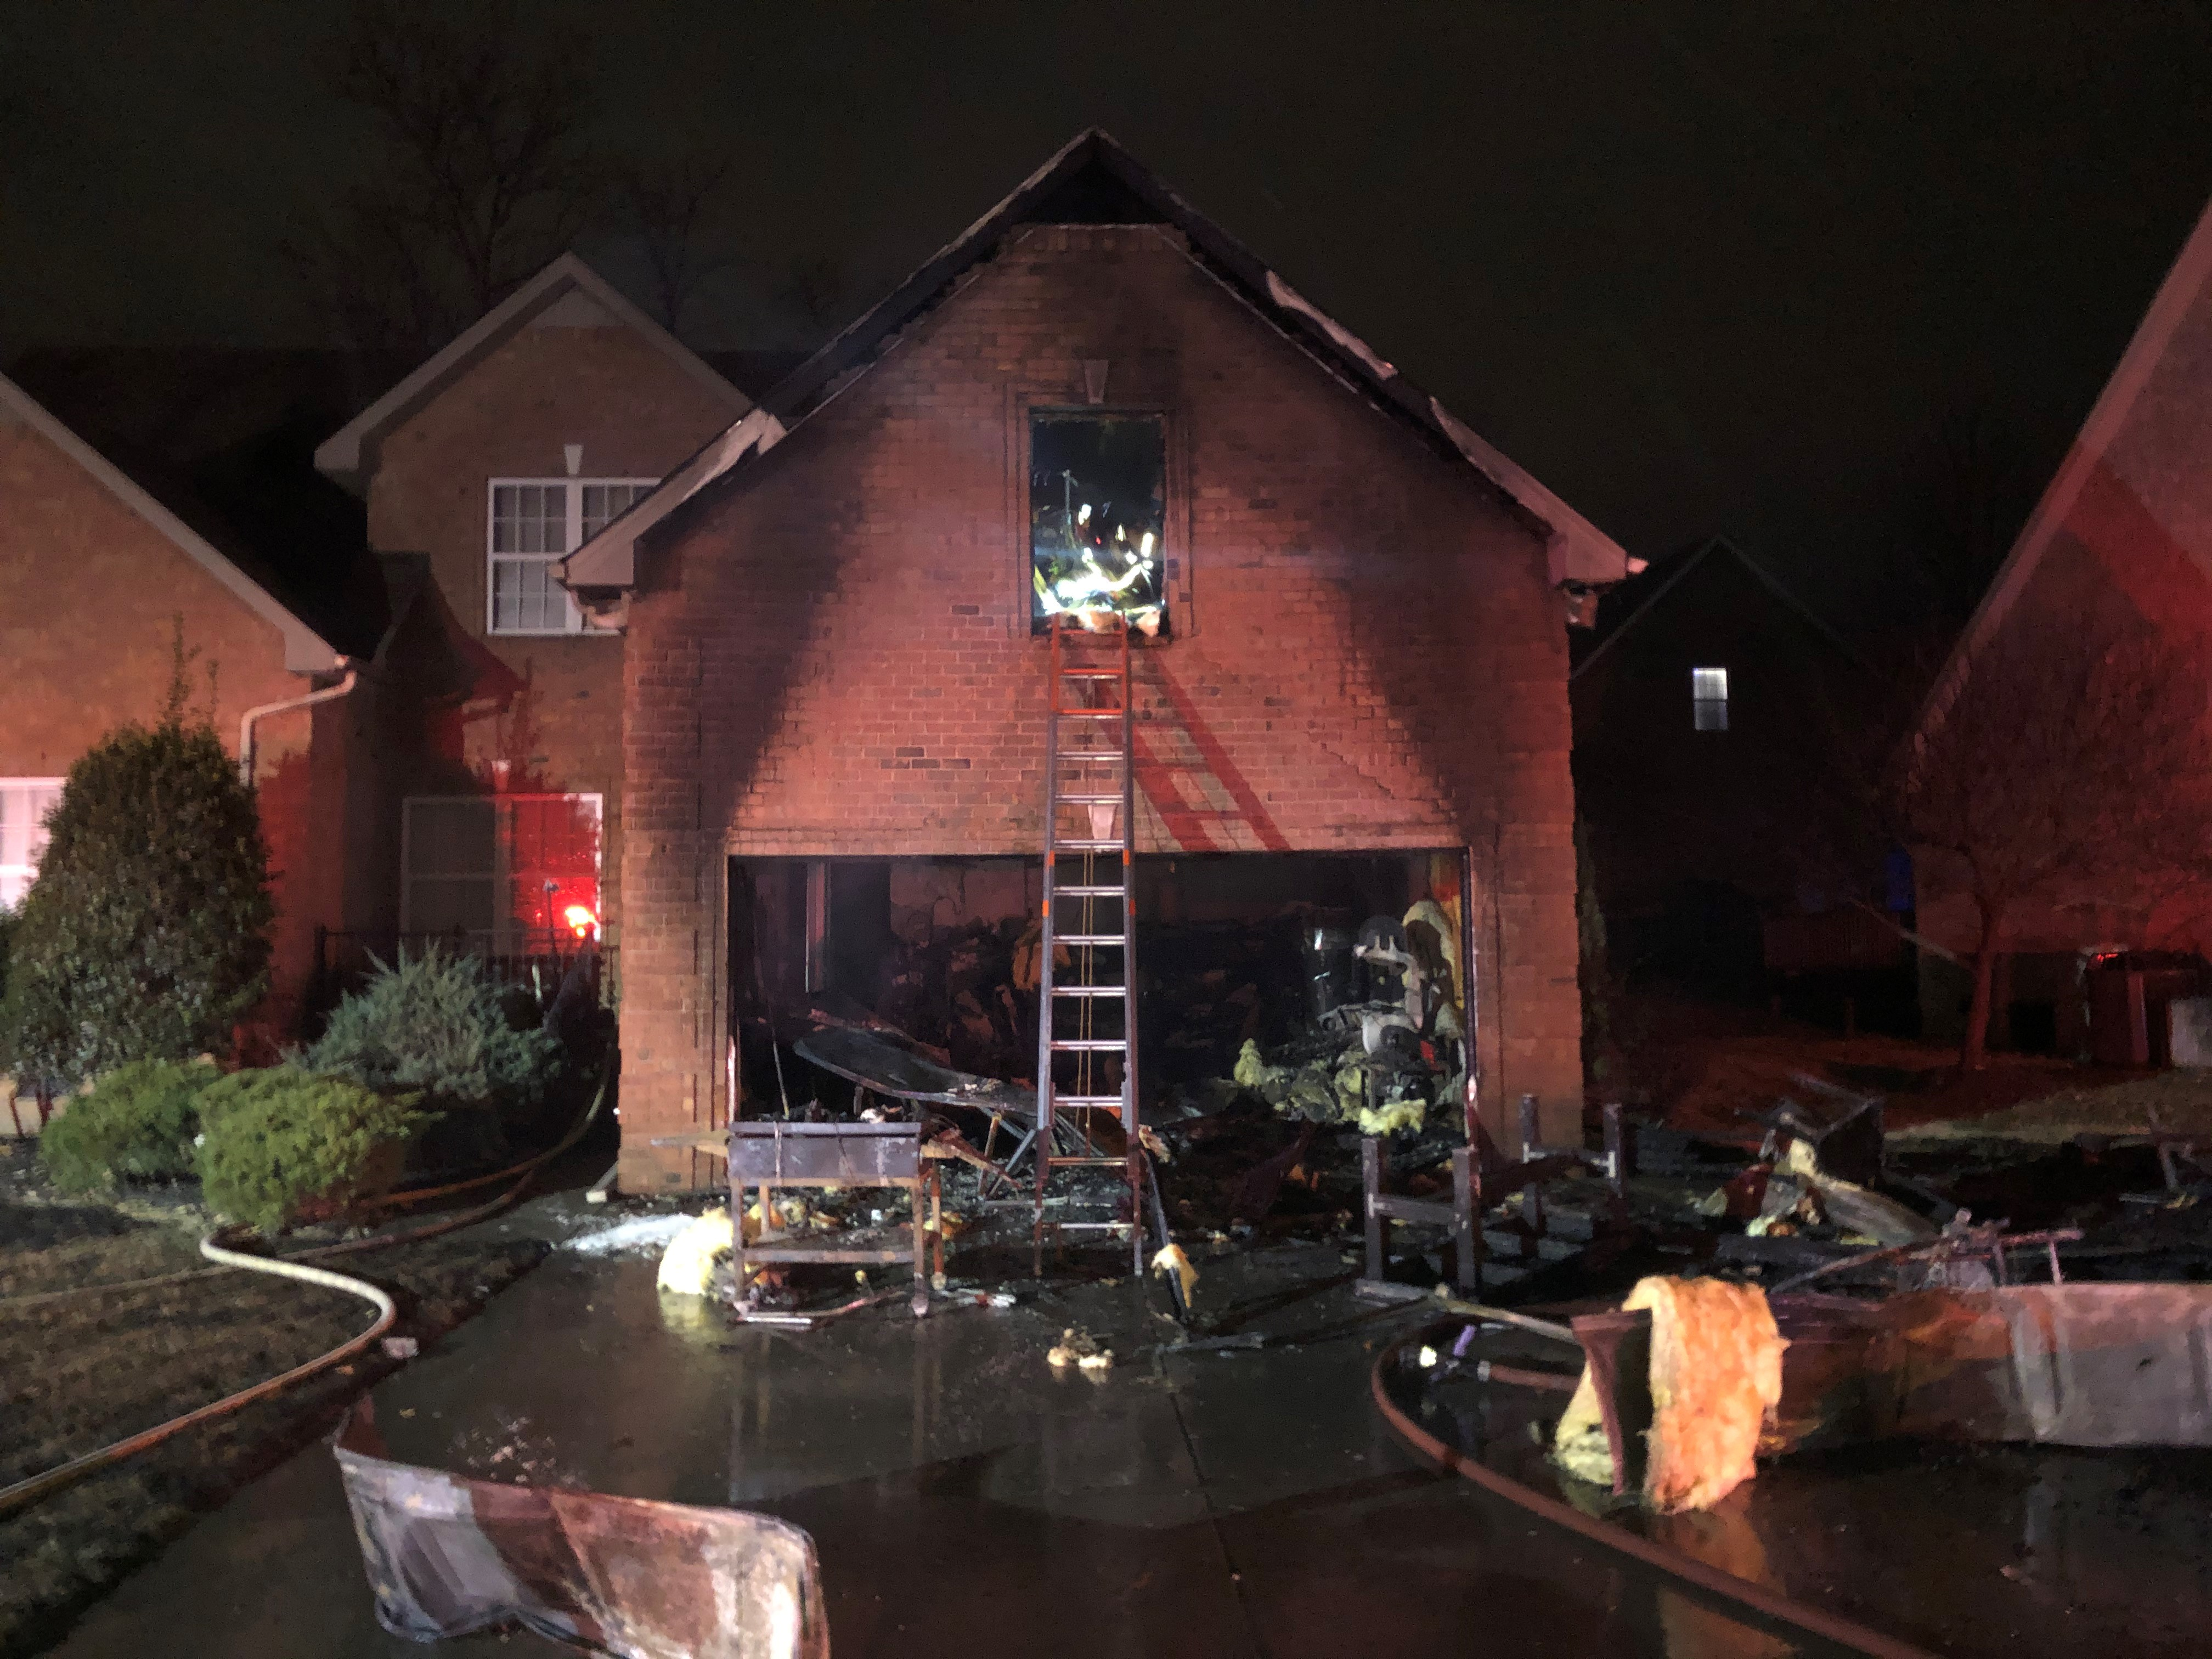 Family escapes house fire unharmed